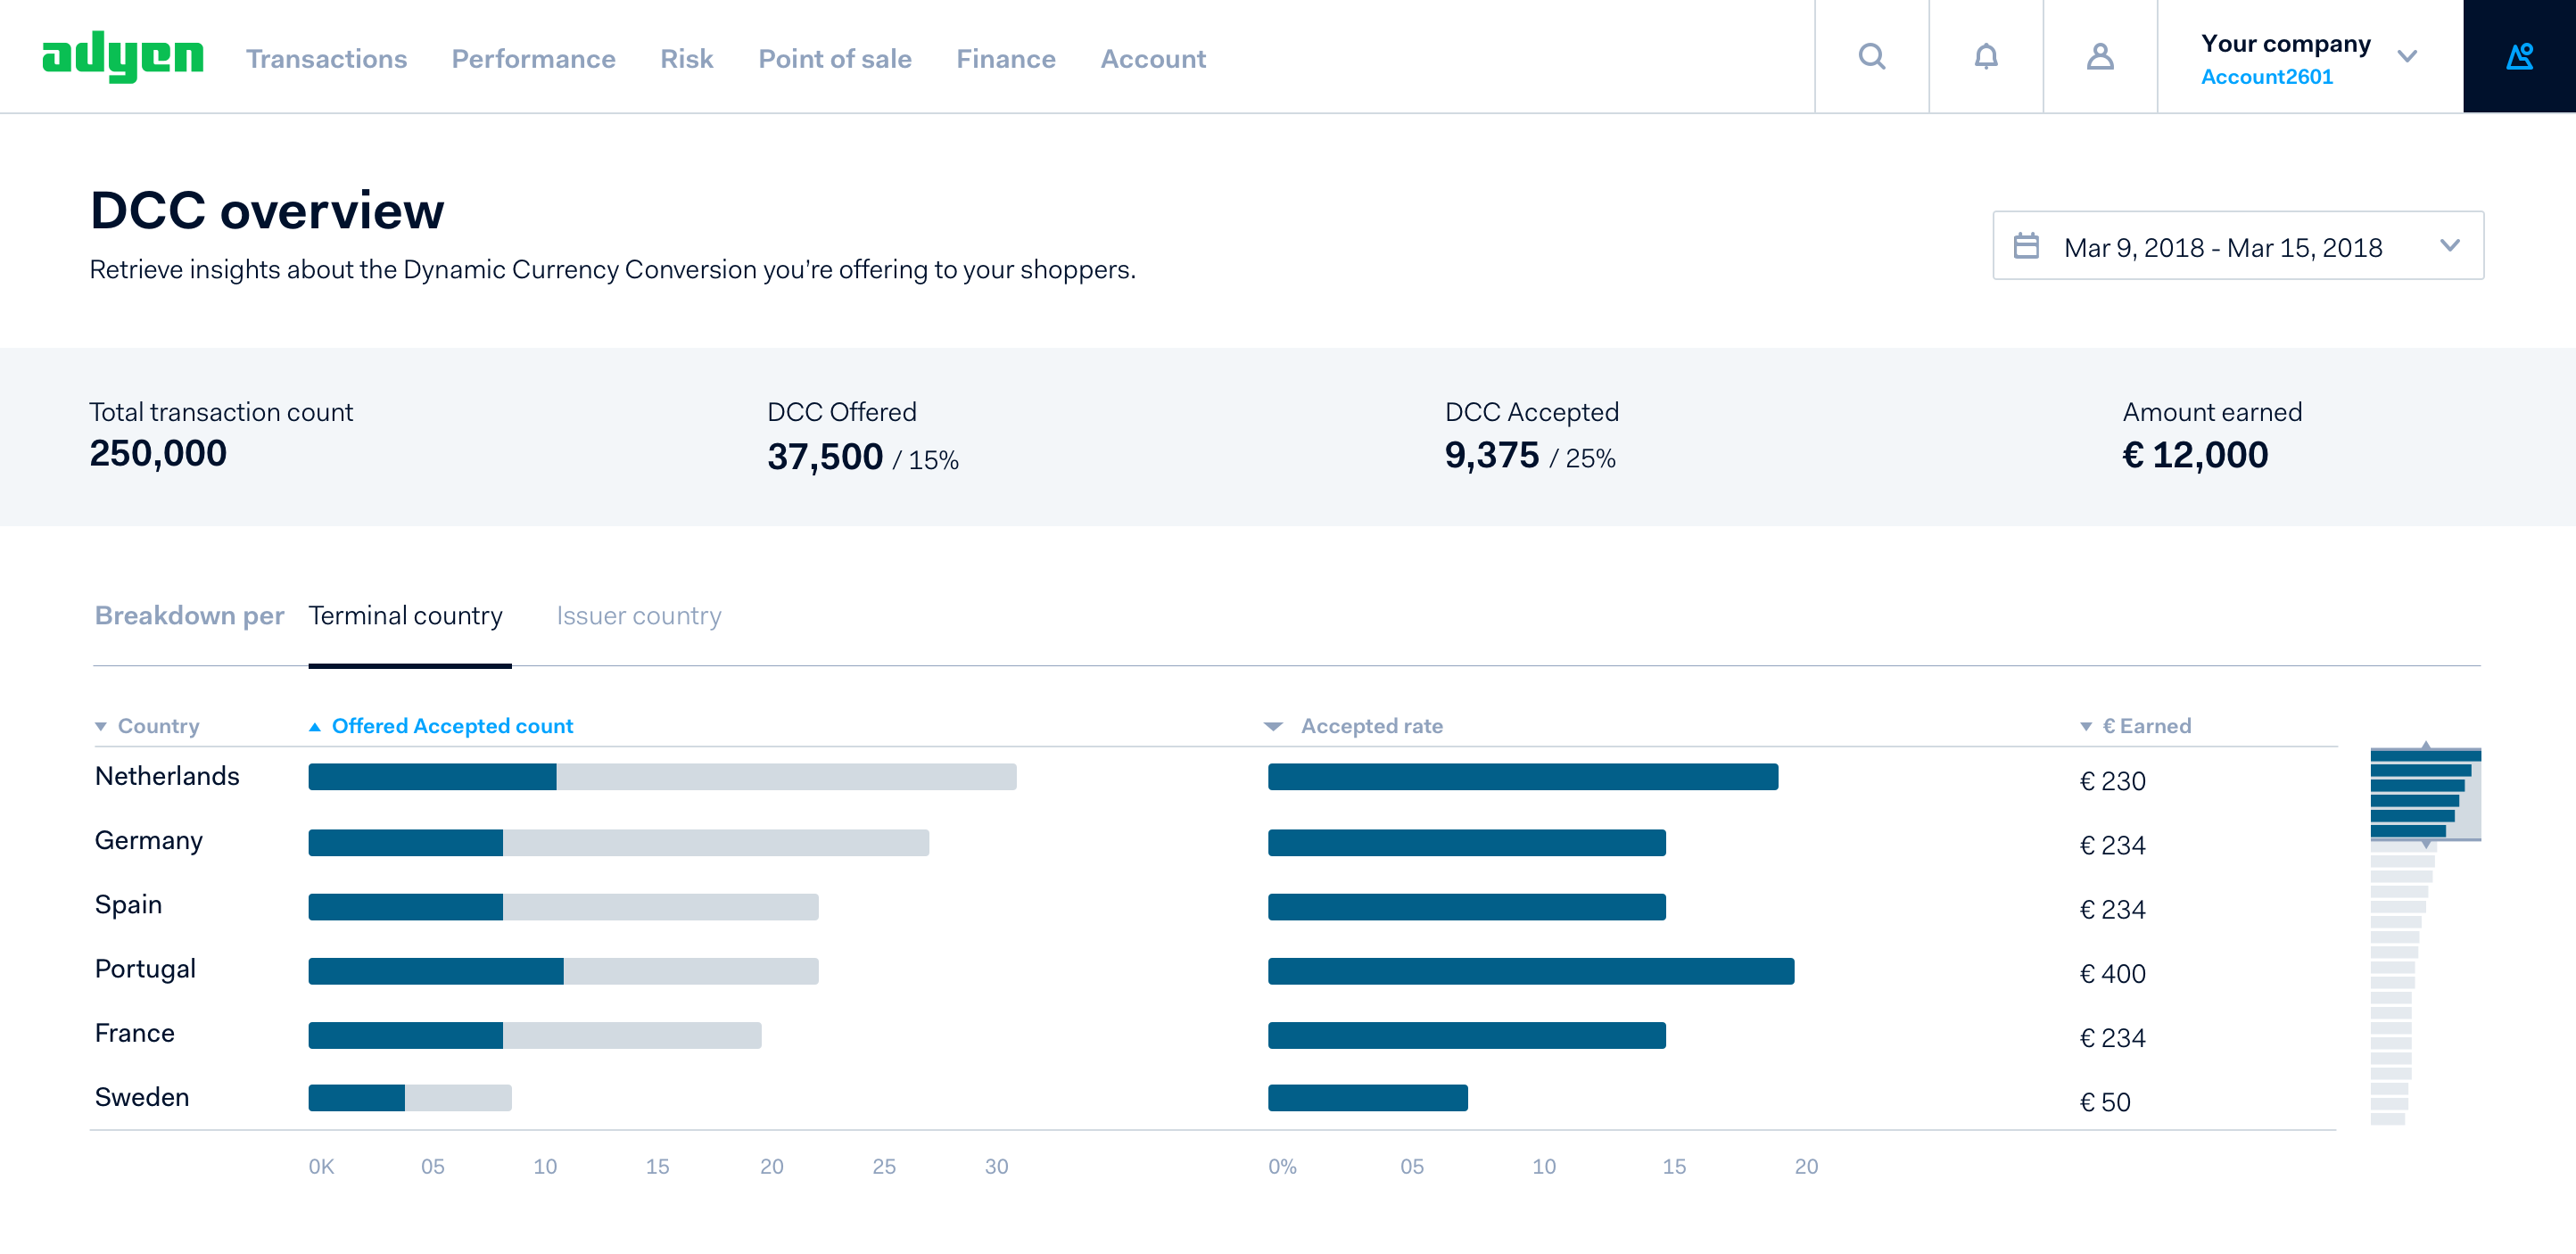 DCC overview dashboard